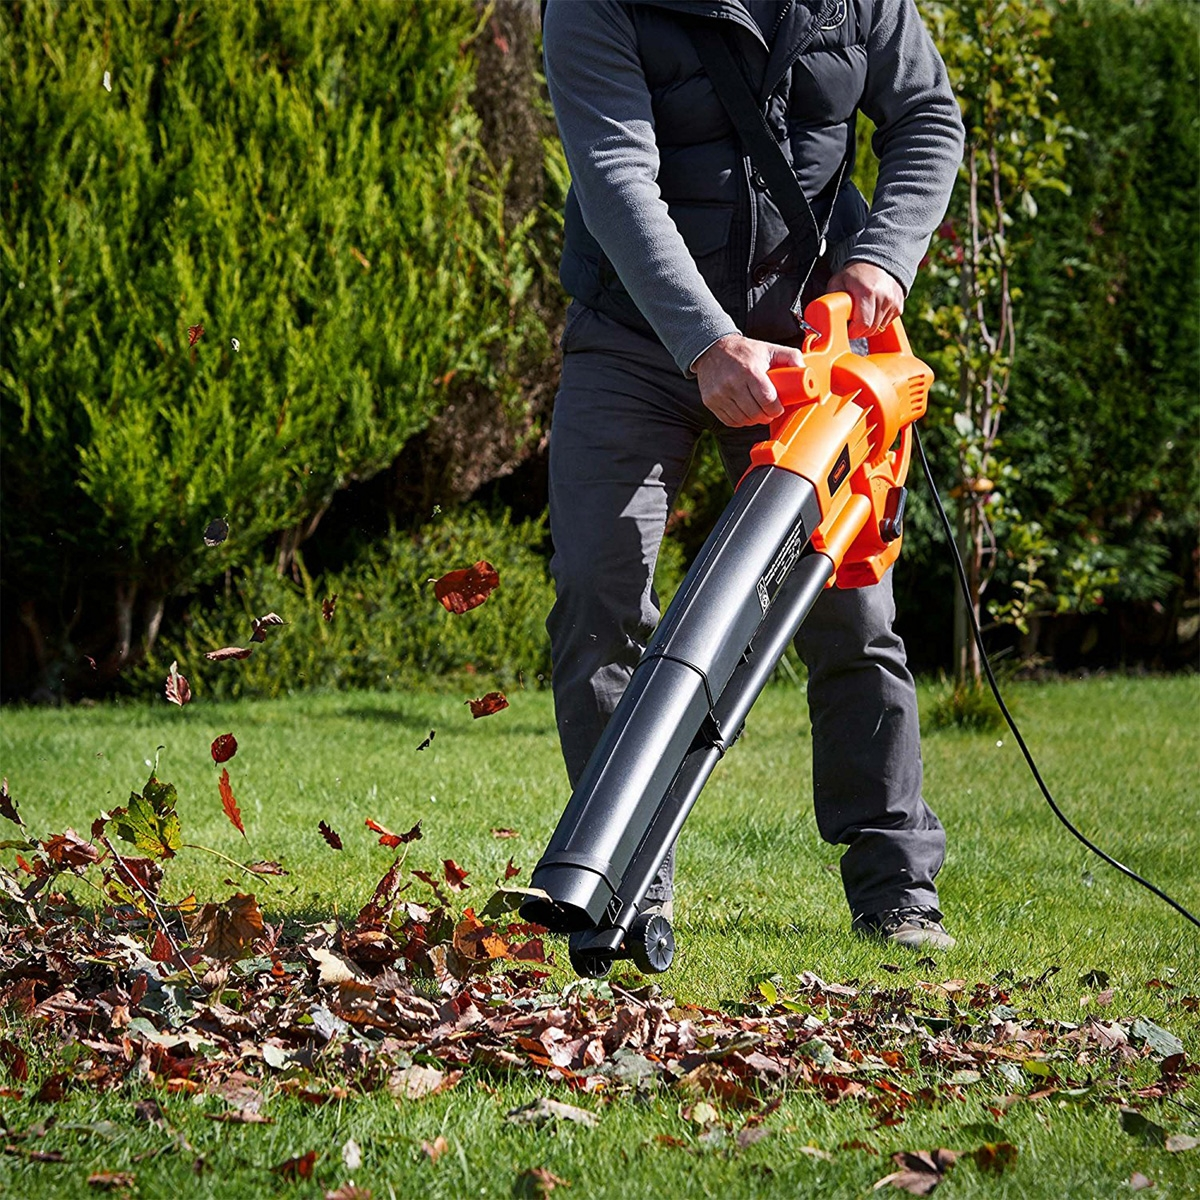 vonhaus 2600w 3 in 1 leaf blower vacuum mulcher for 220 240 volts